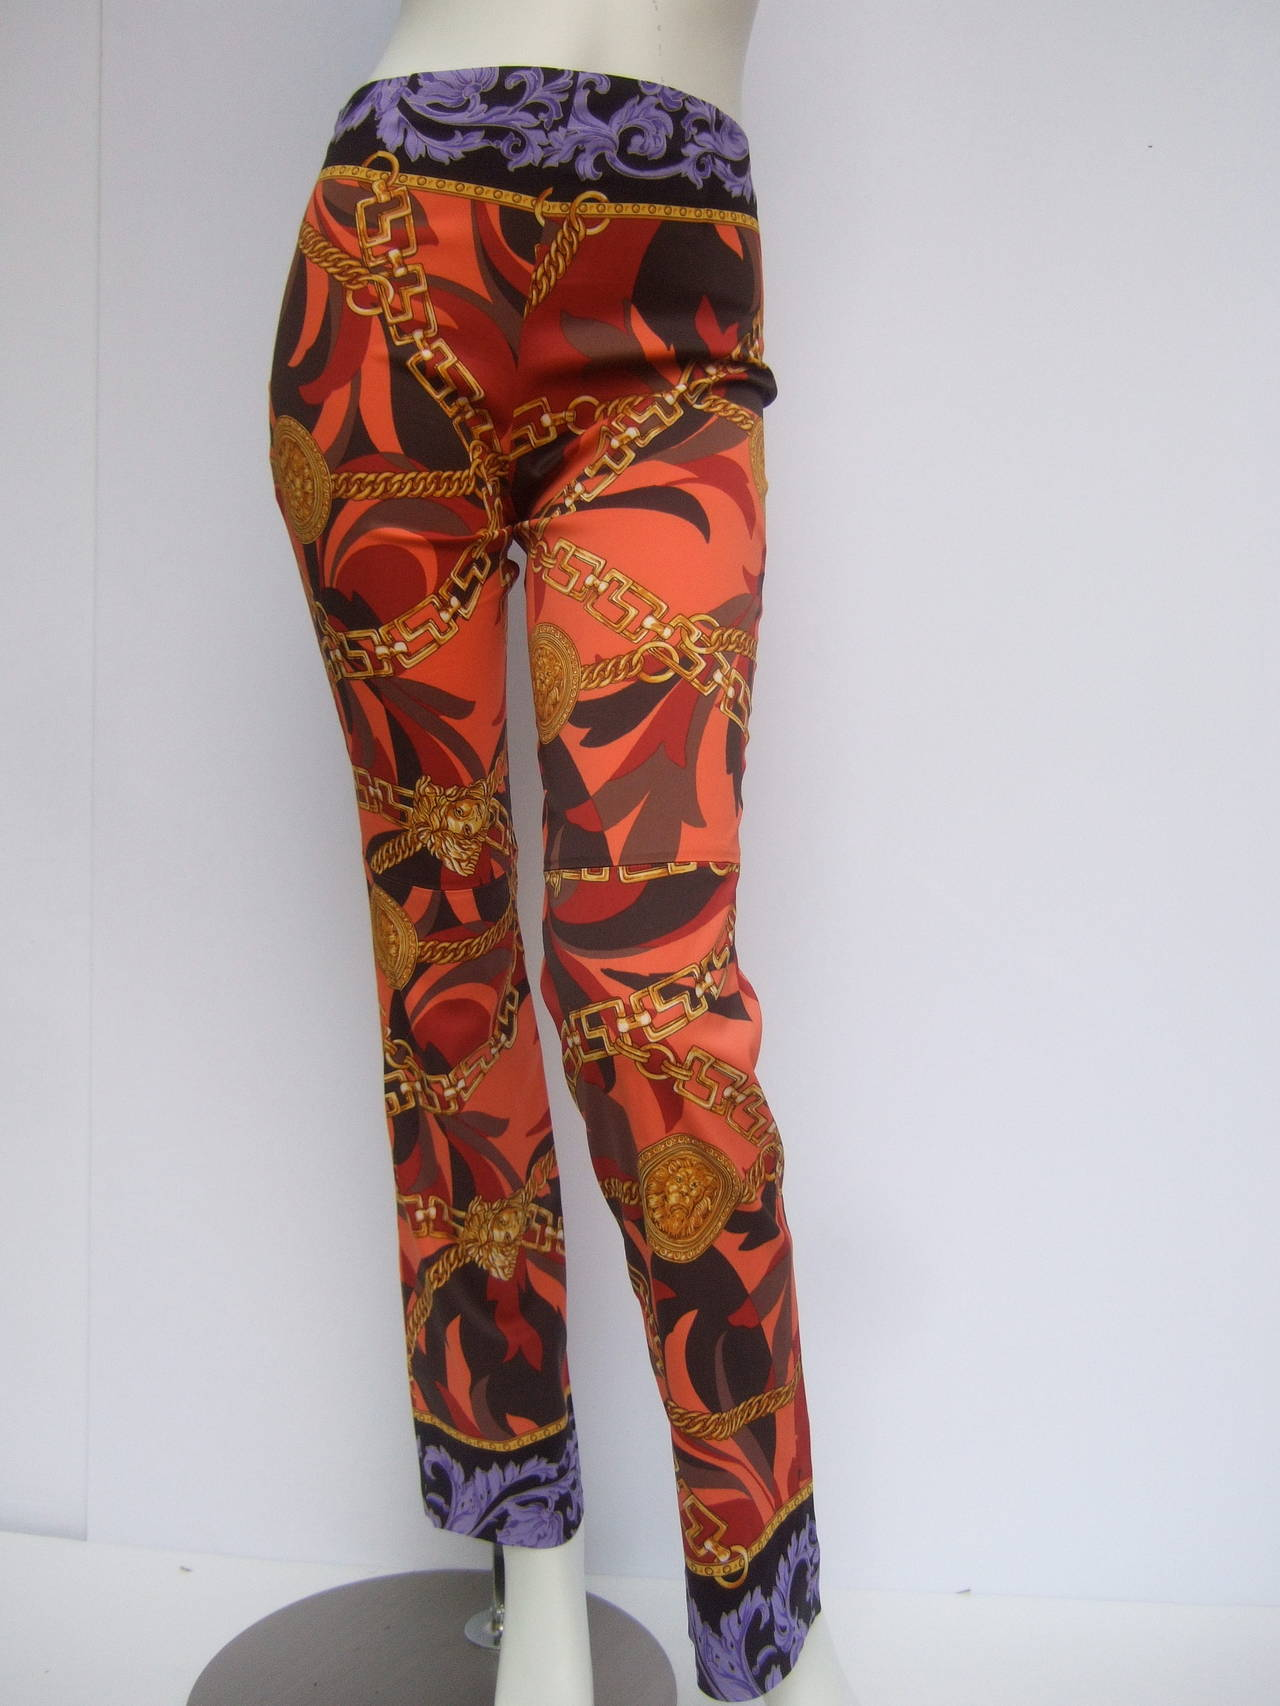 Versace Iconic Medusa Graphic Print Stretch Jeans Size 28 For Sale 5